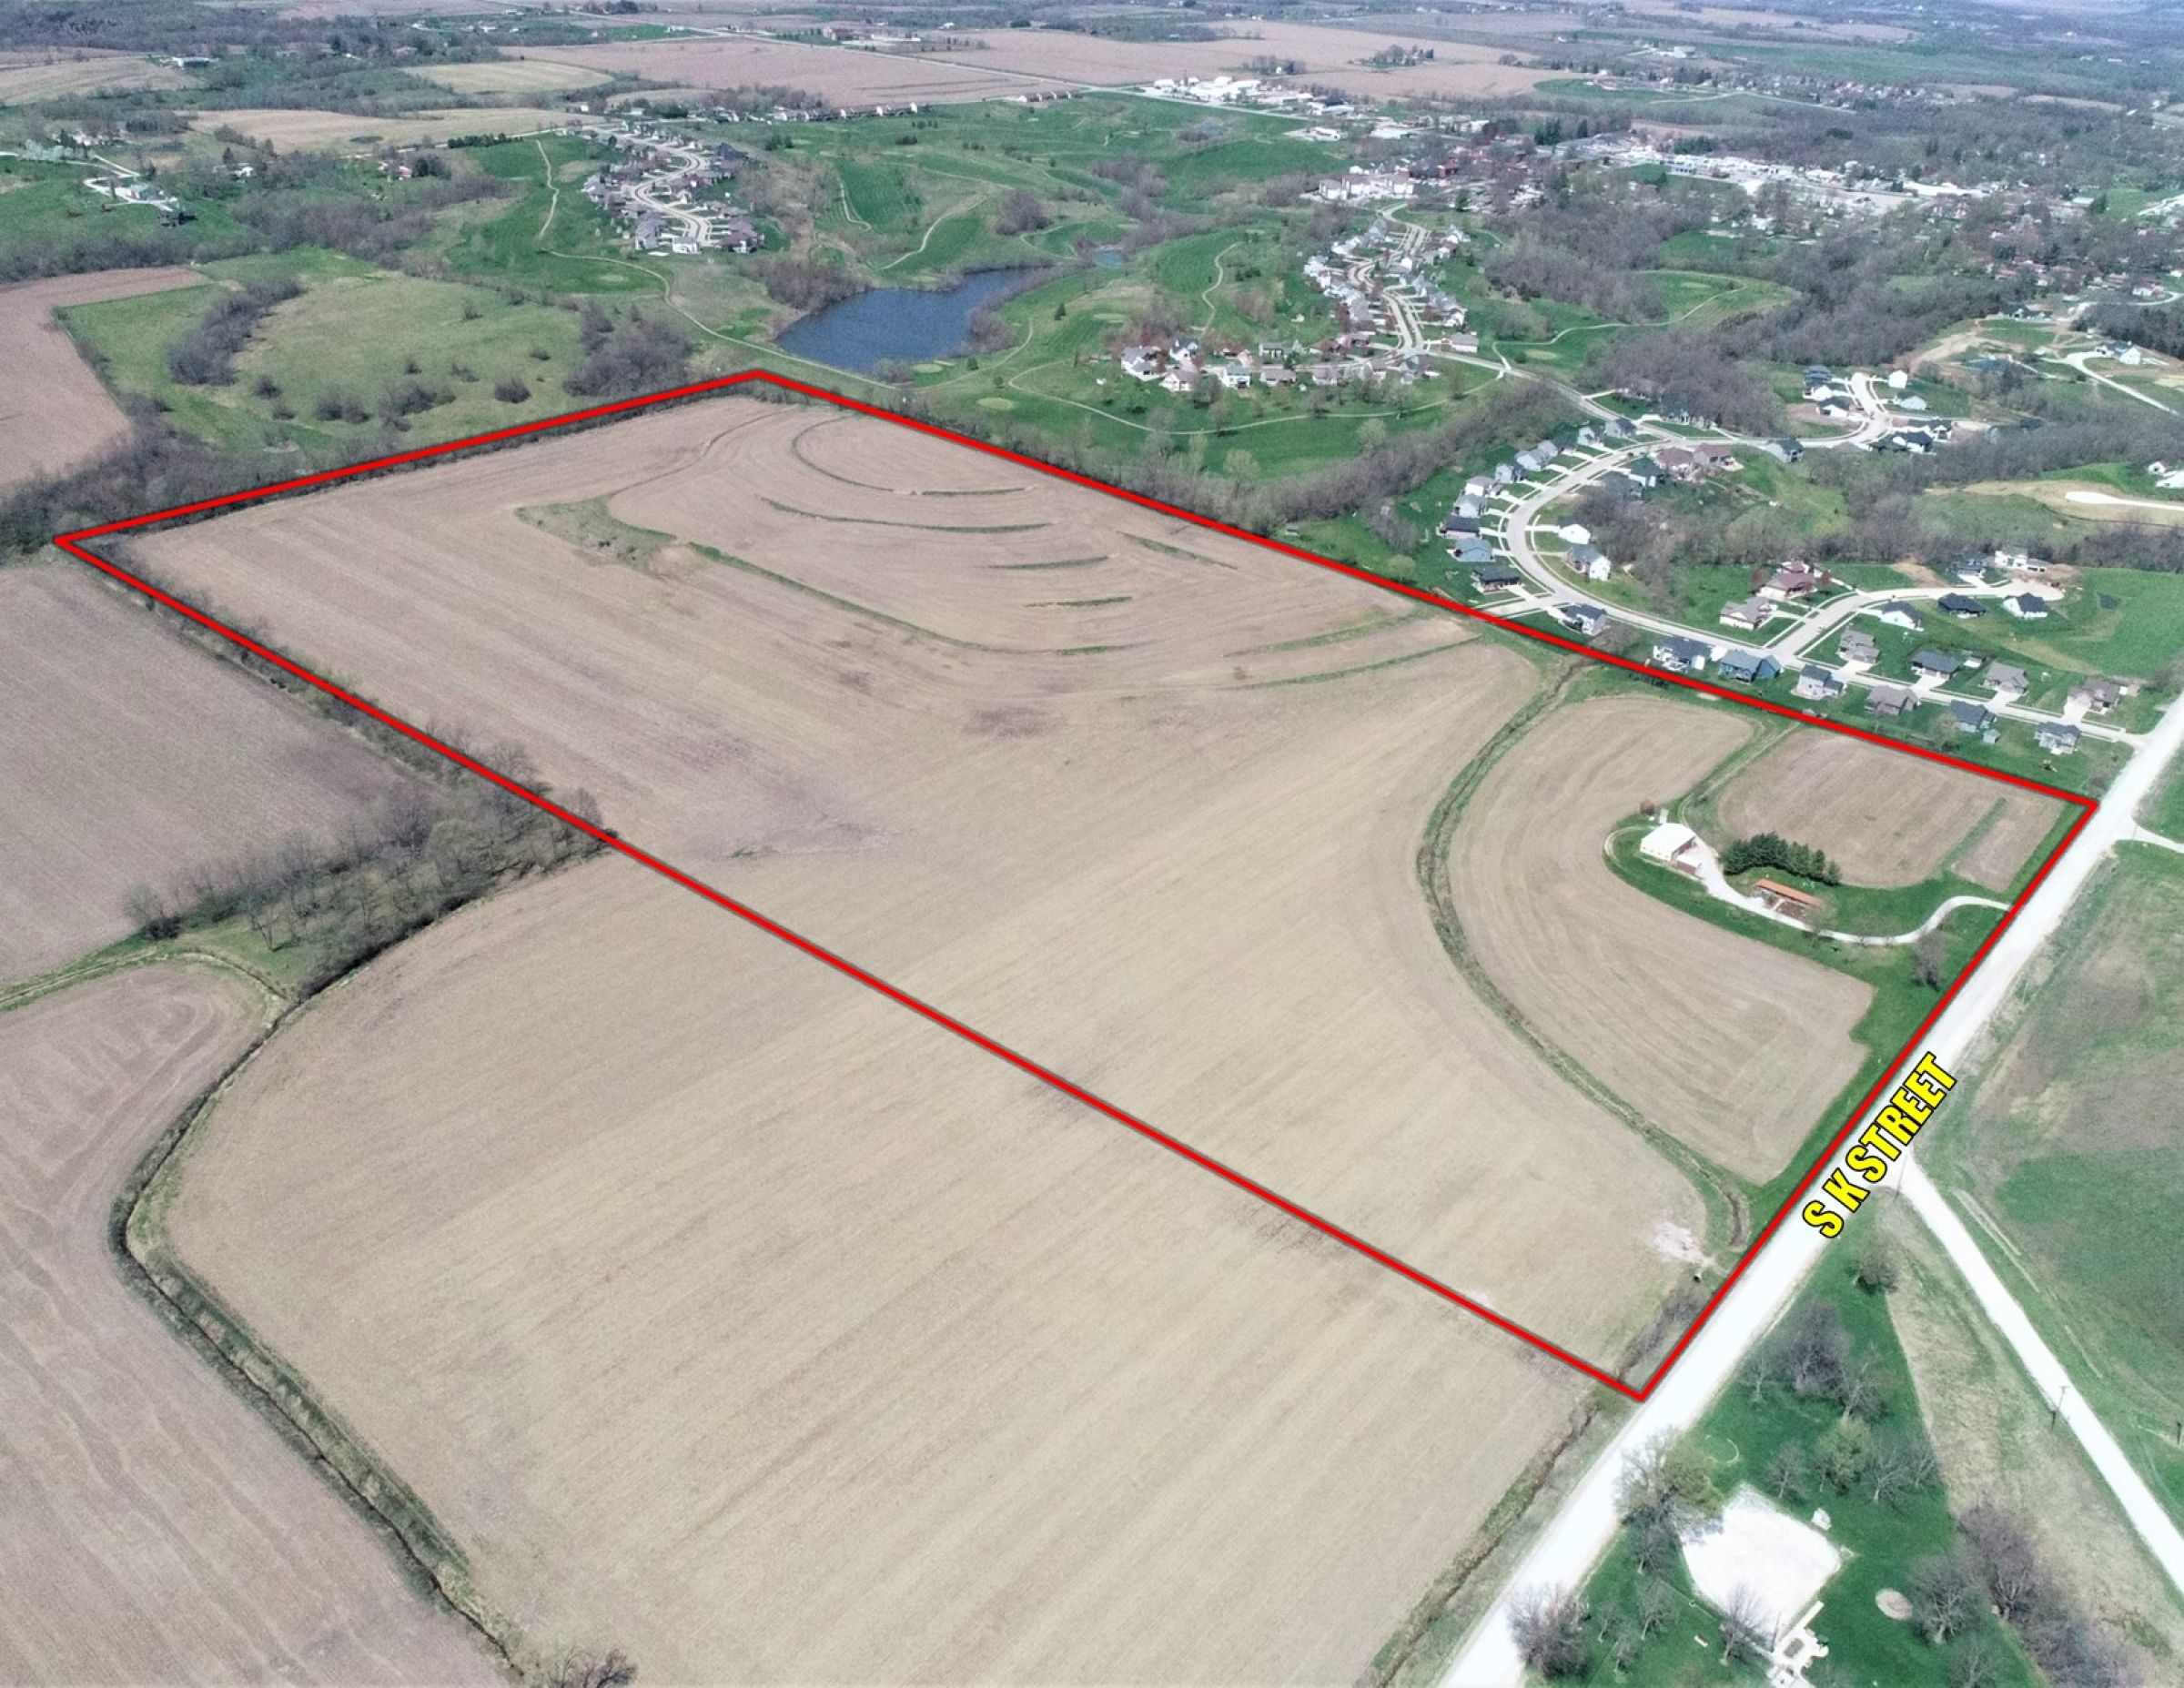 development-land-warren-county-iowa-80-acres-listing-number-15464-1-2021-04-15-232750.jpg